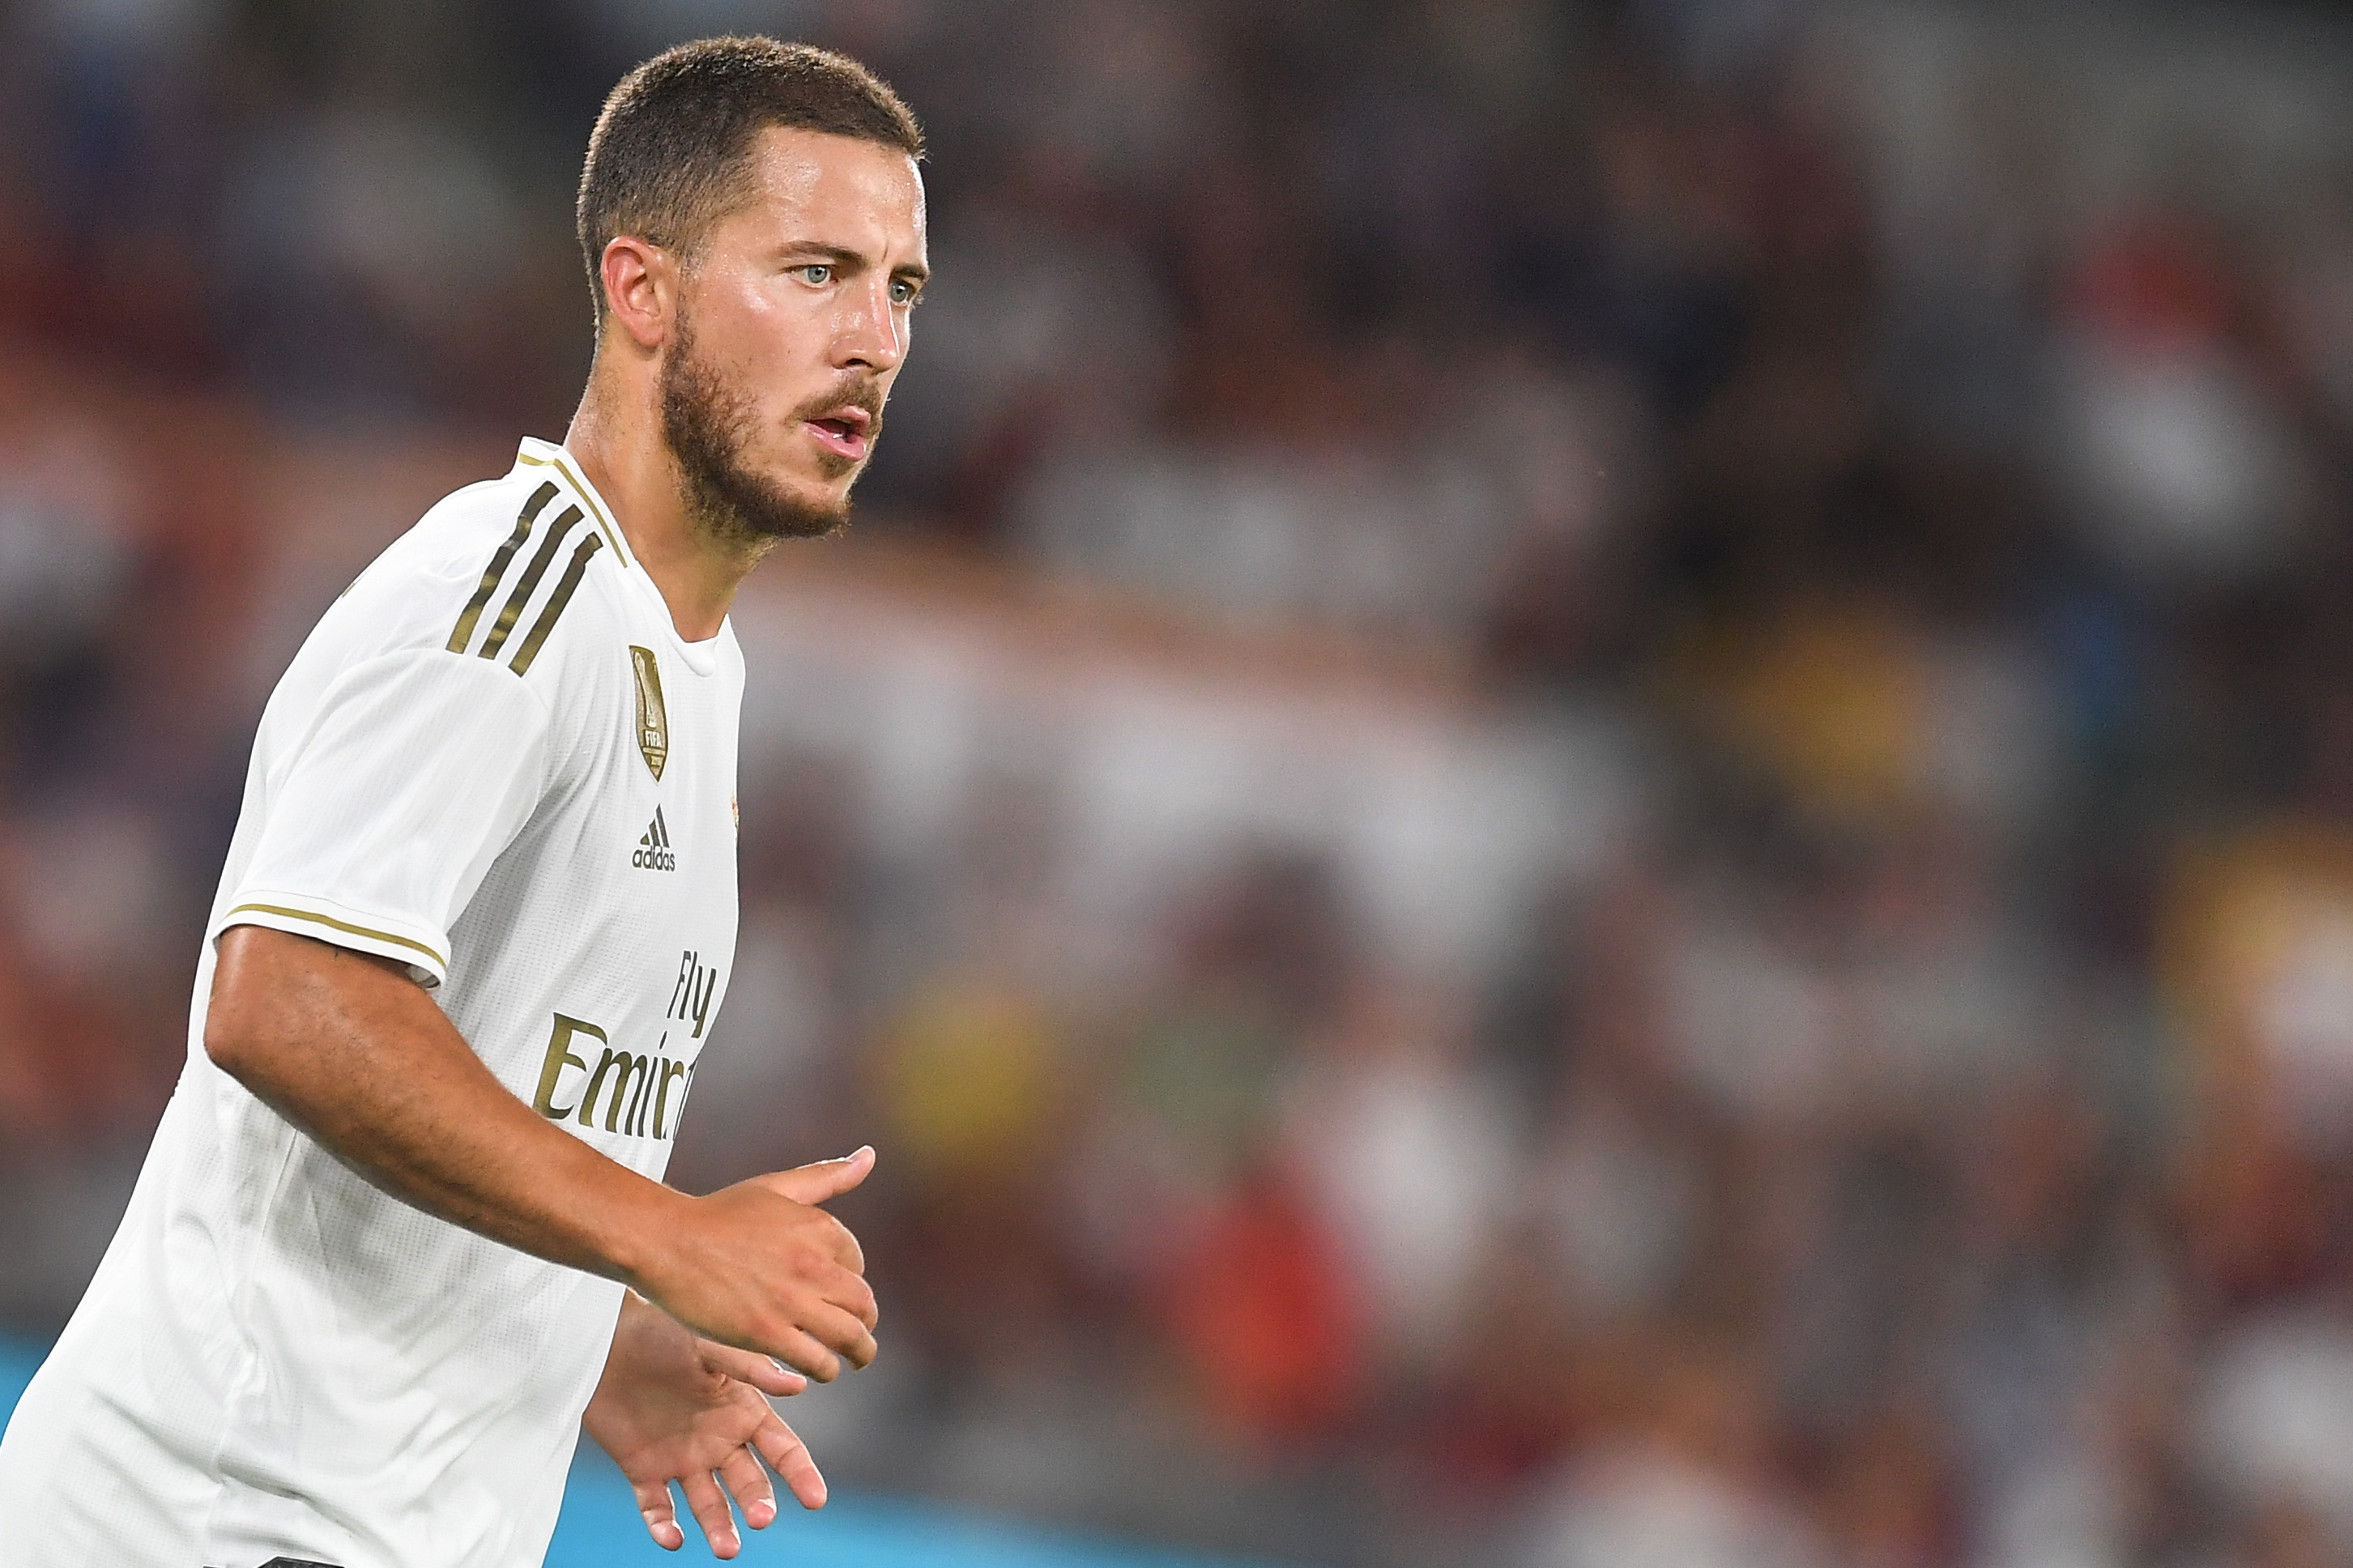 Zidane talks about Eden Hazard: Will he need surgery?